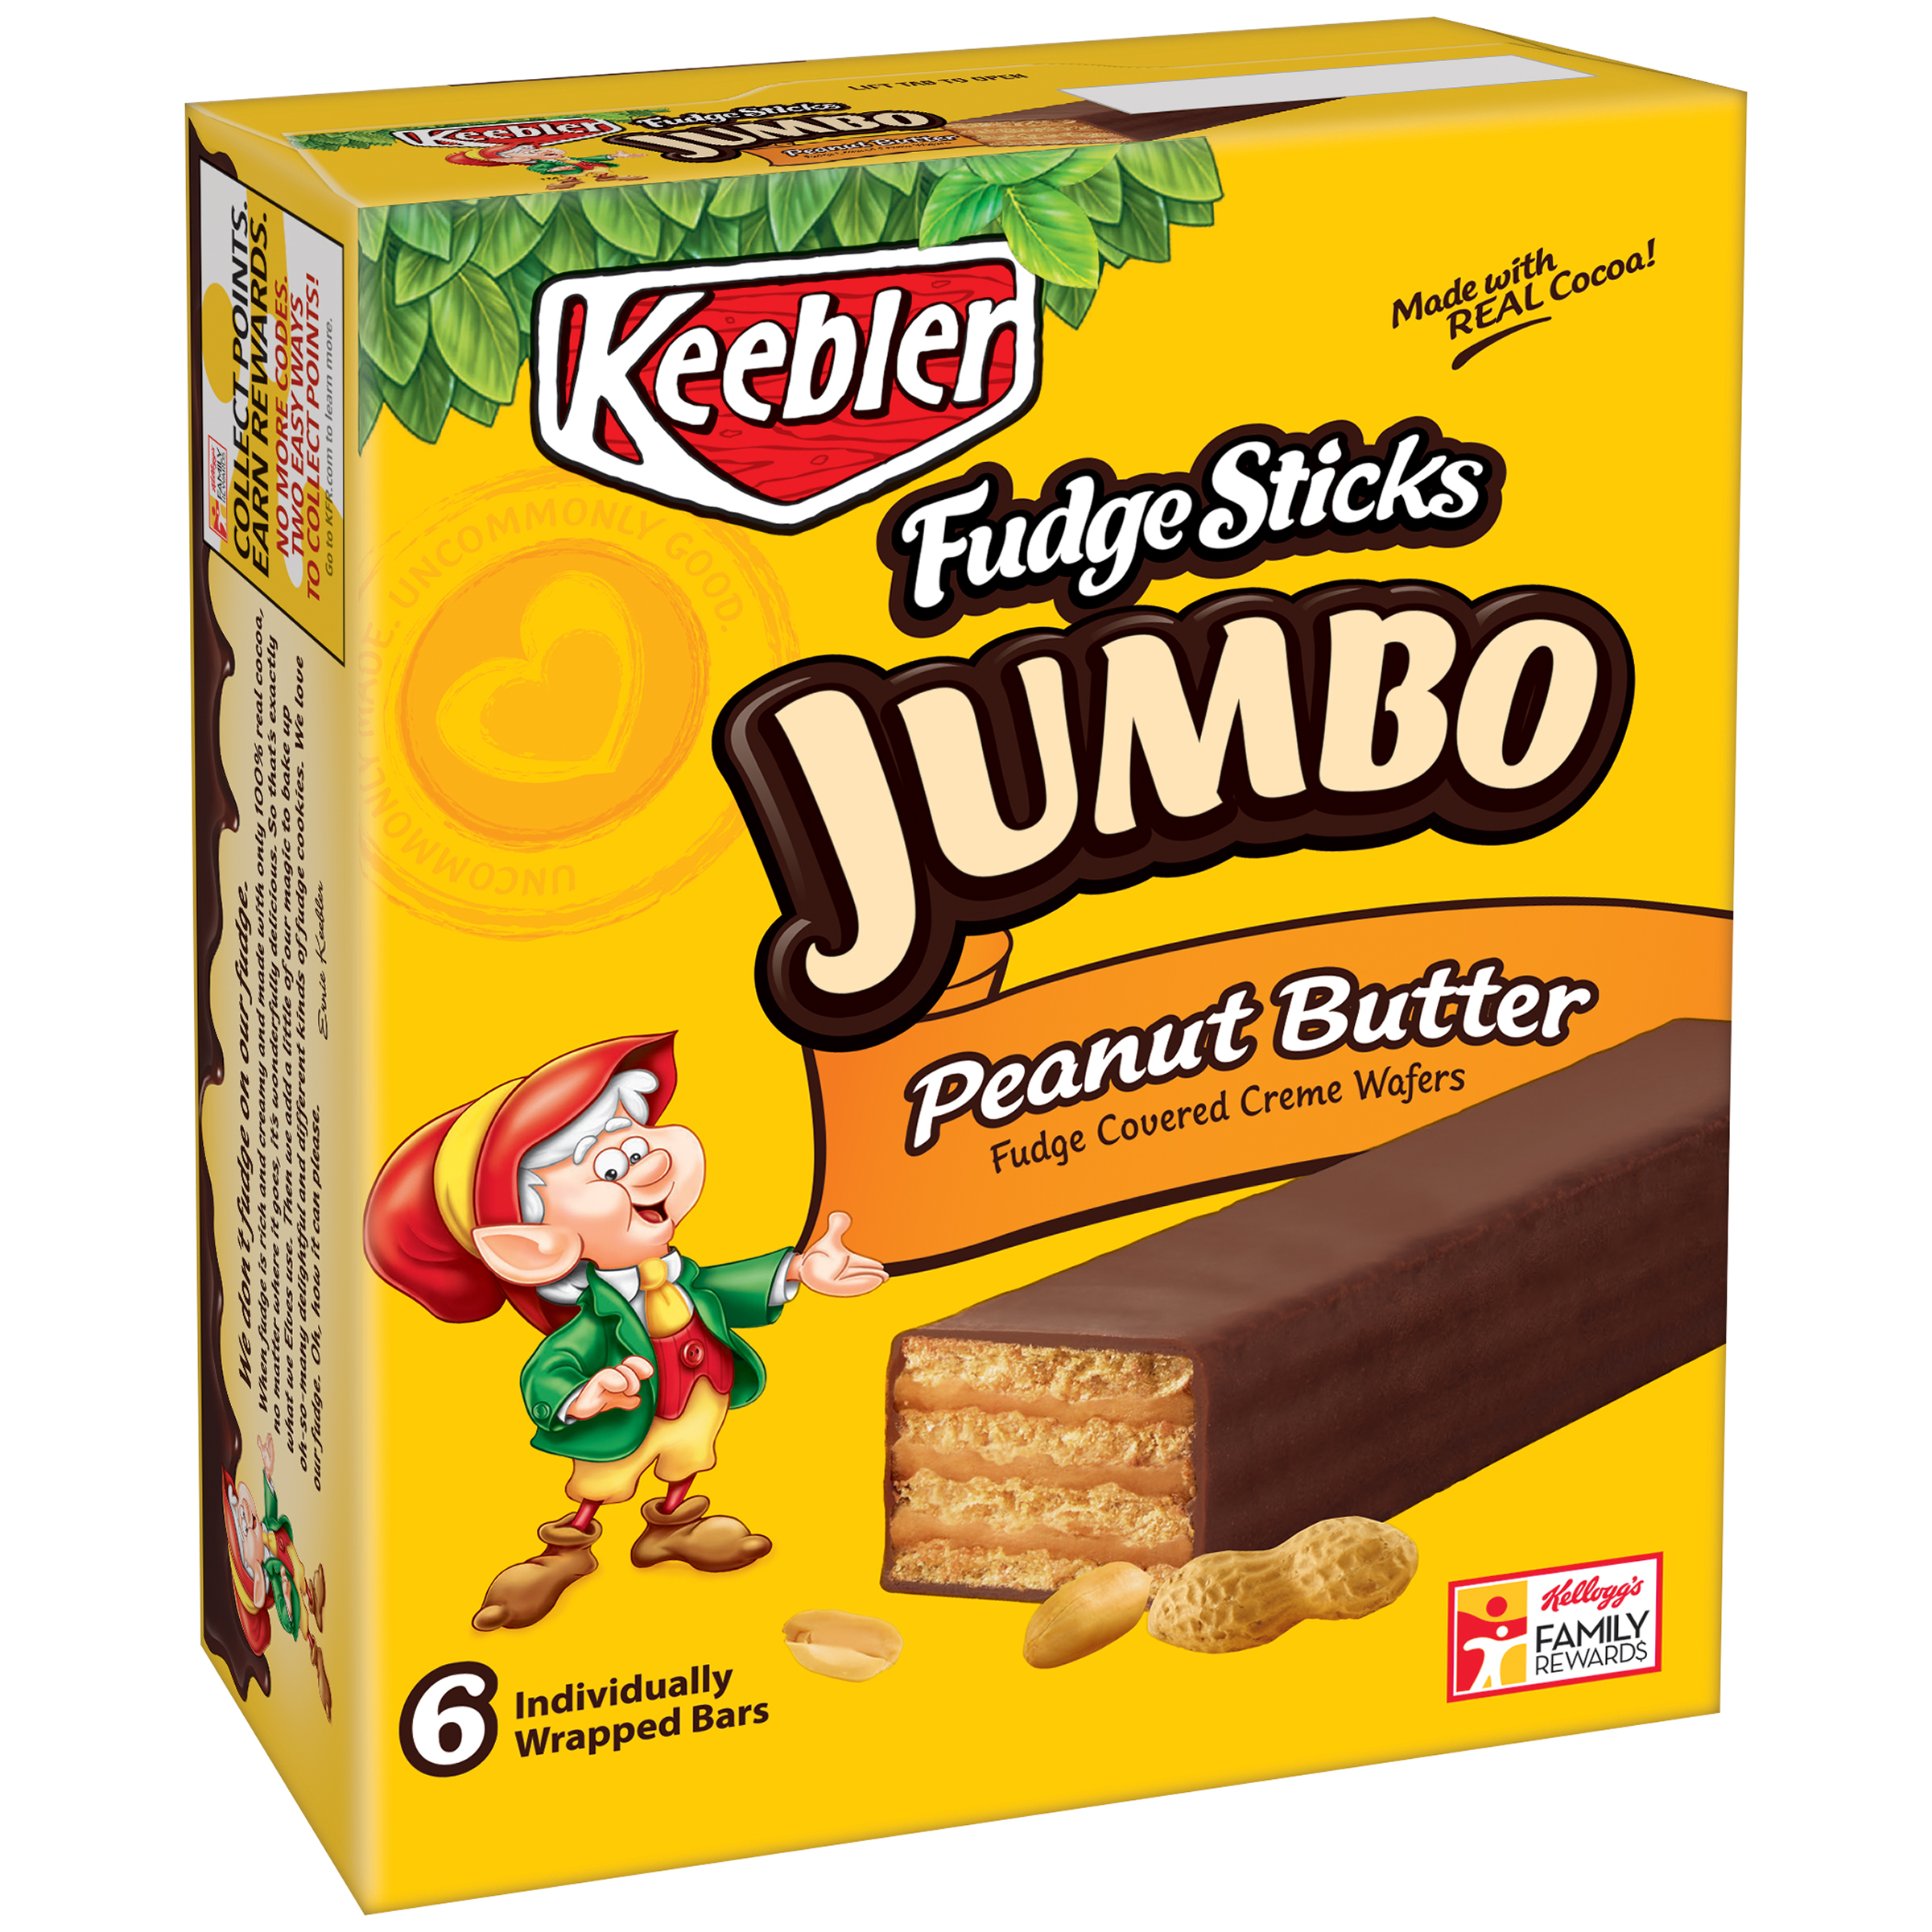 Keebler® Jumbo Fudge Sticks Peanut Butter 6-1.1 oz. Bars